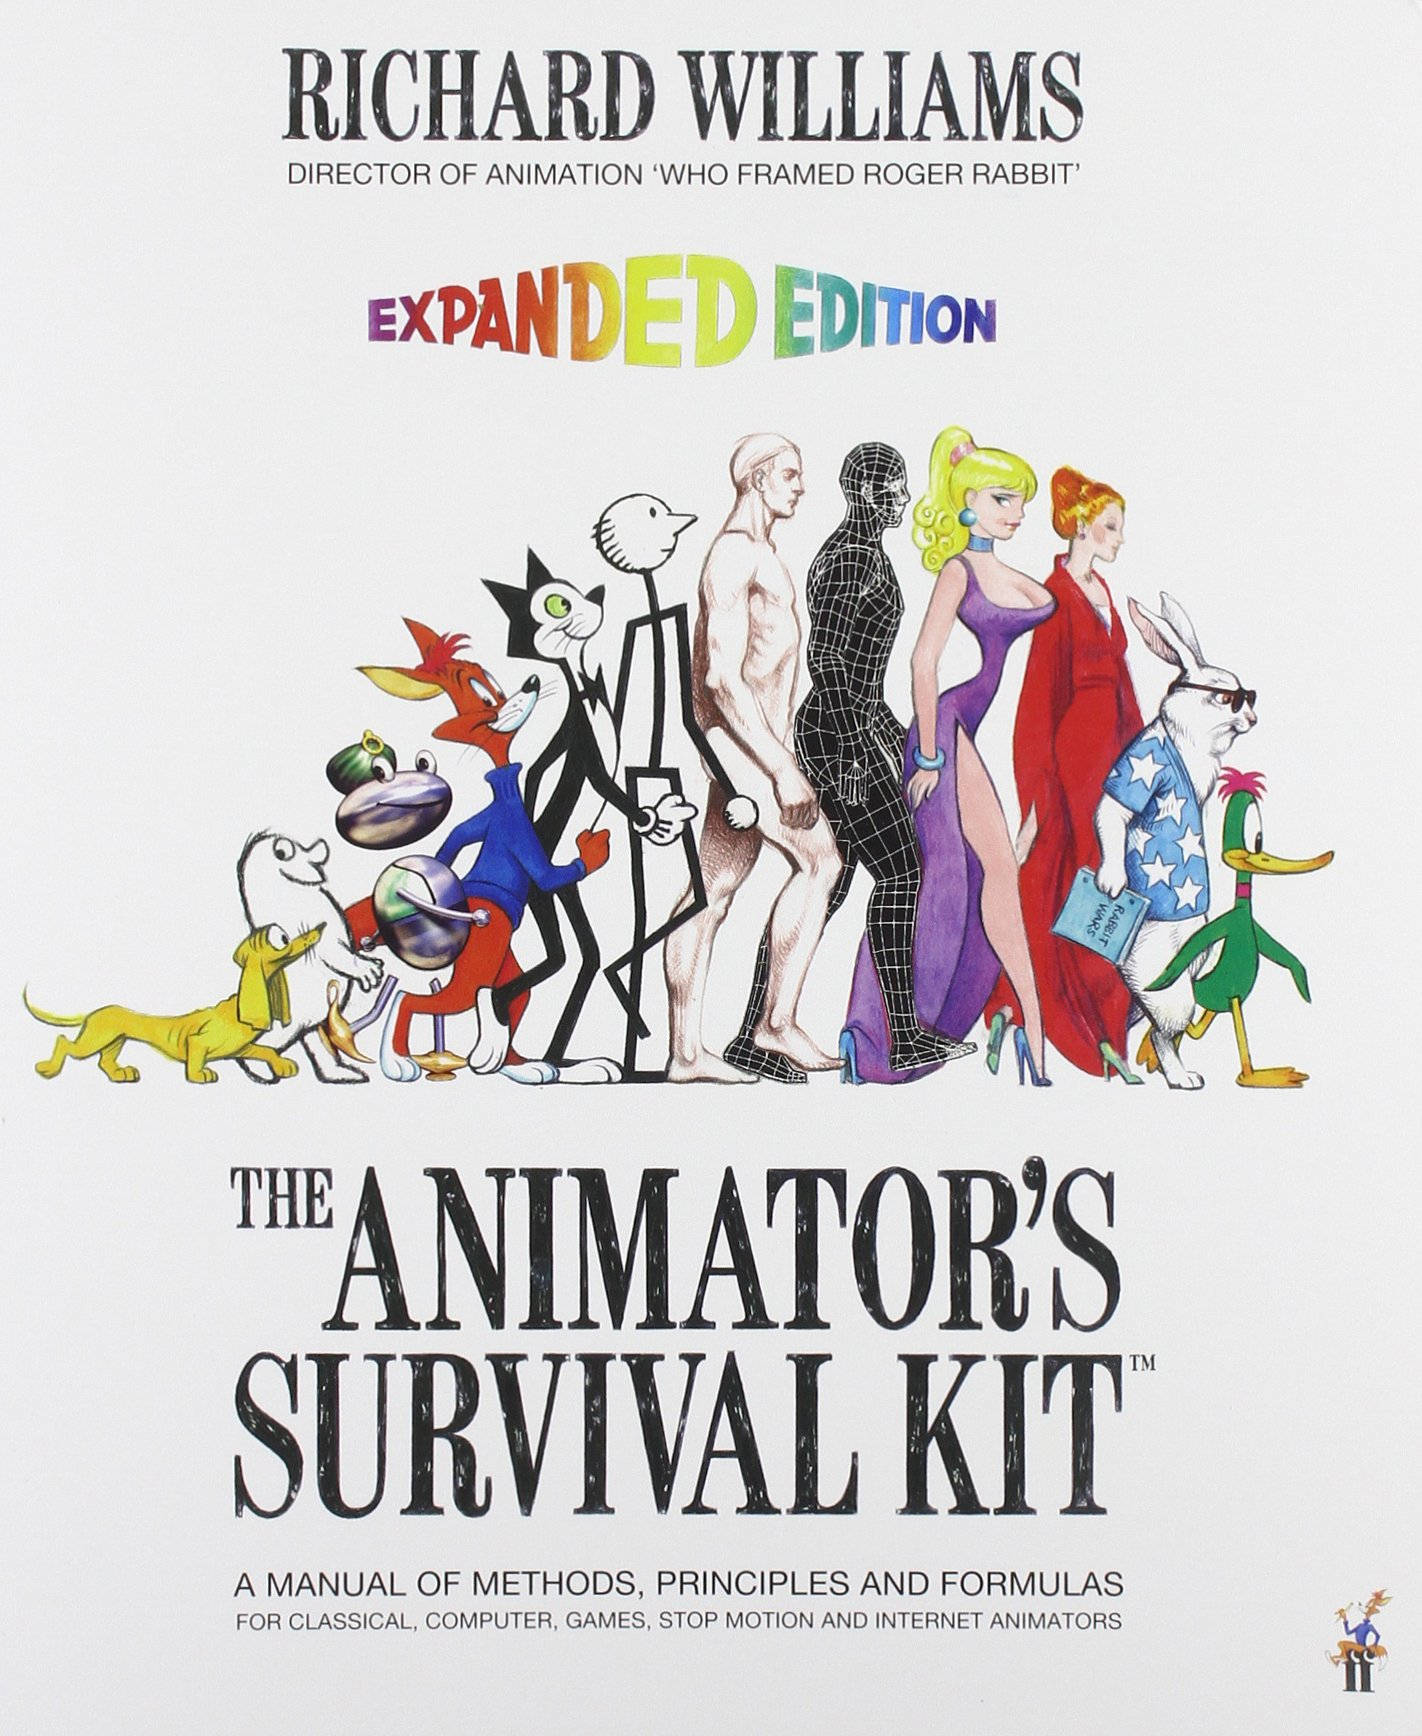 The Animator's Survival Kit by Richards Williams